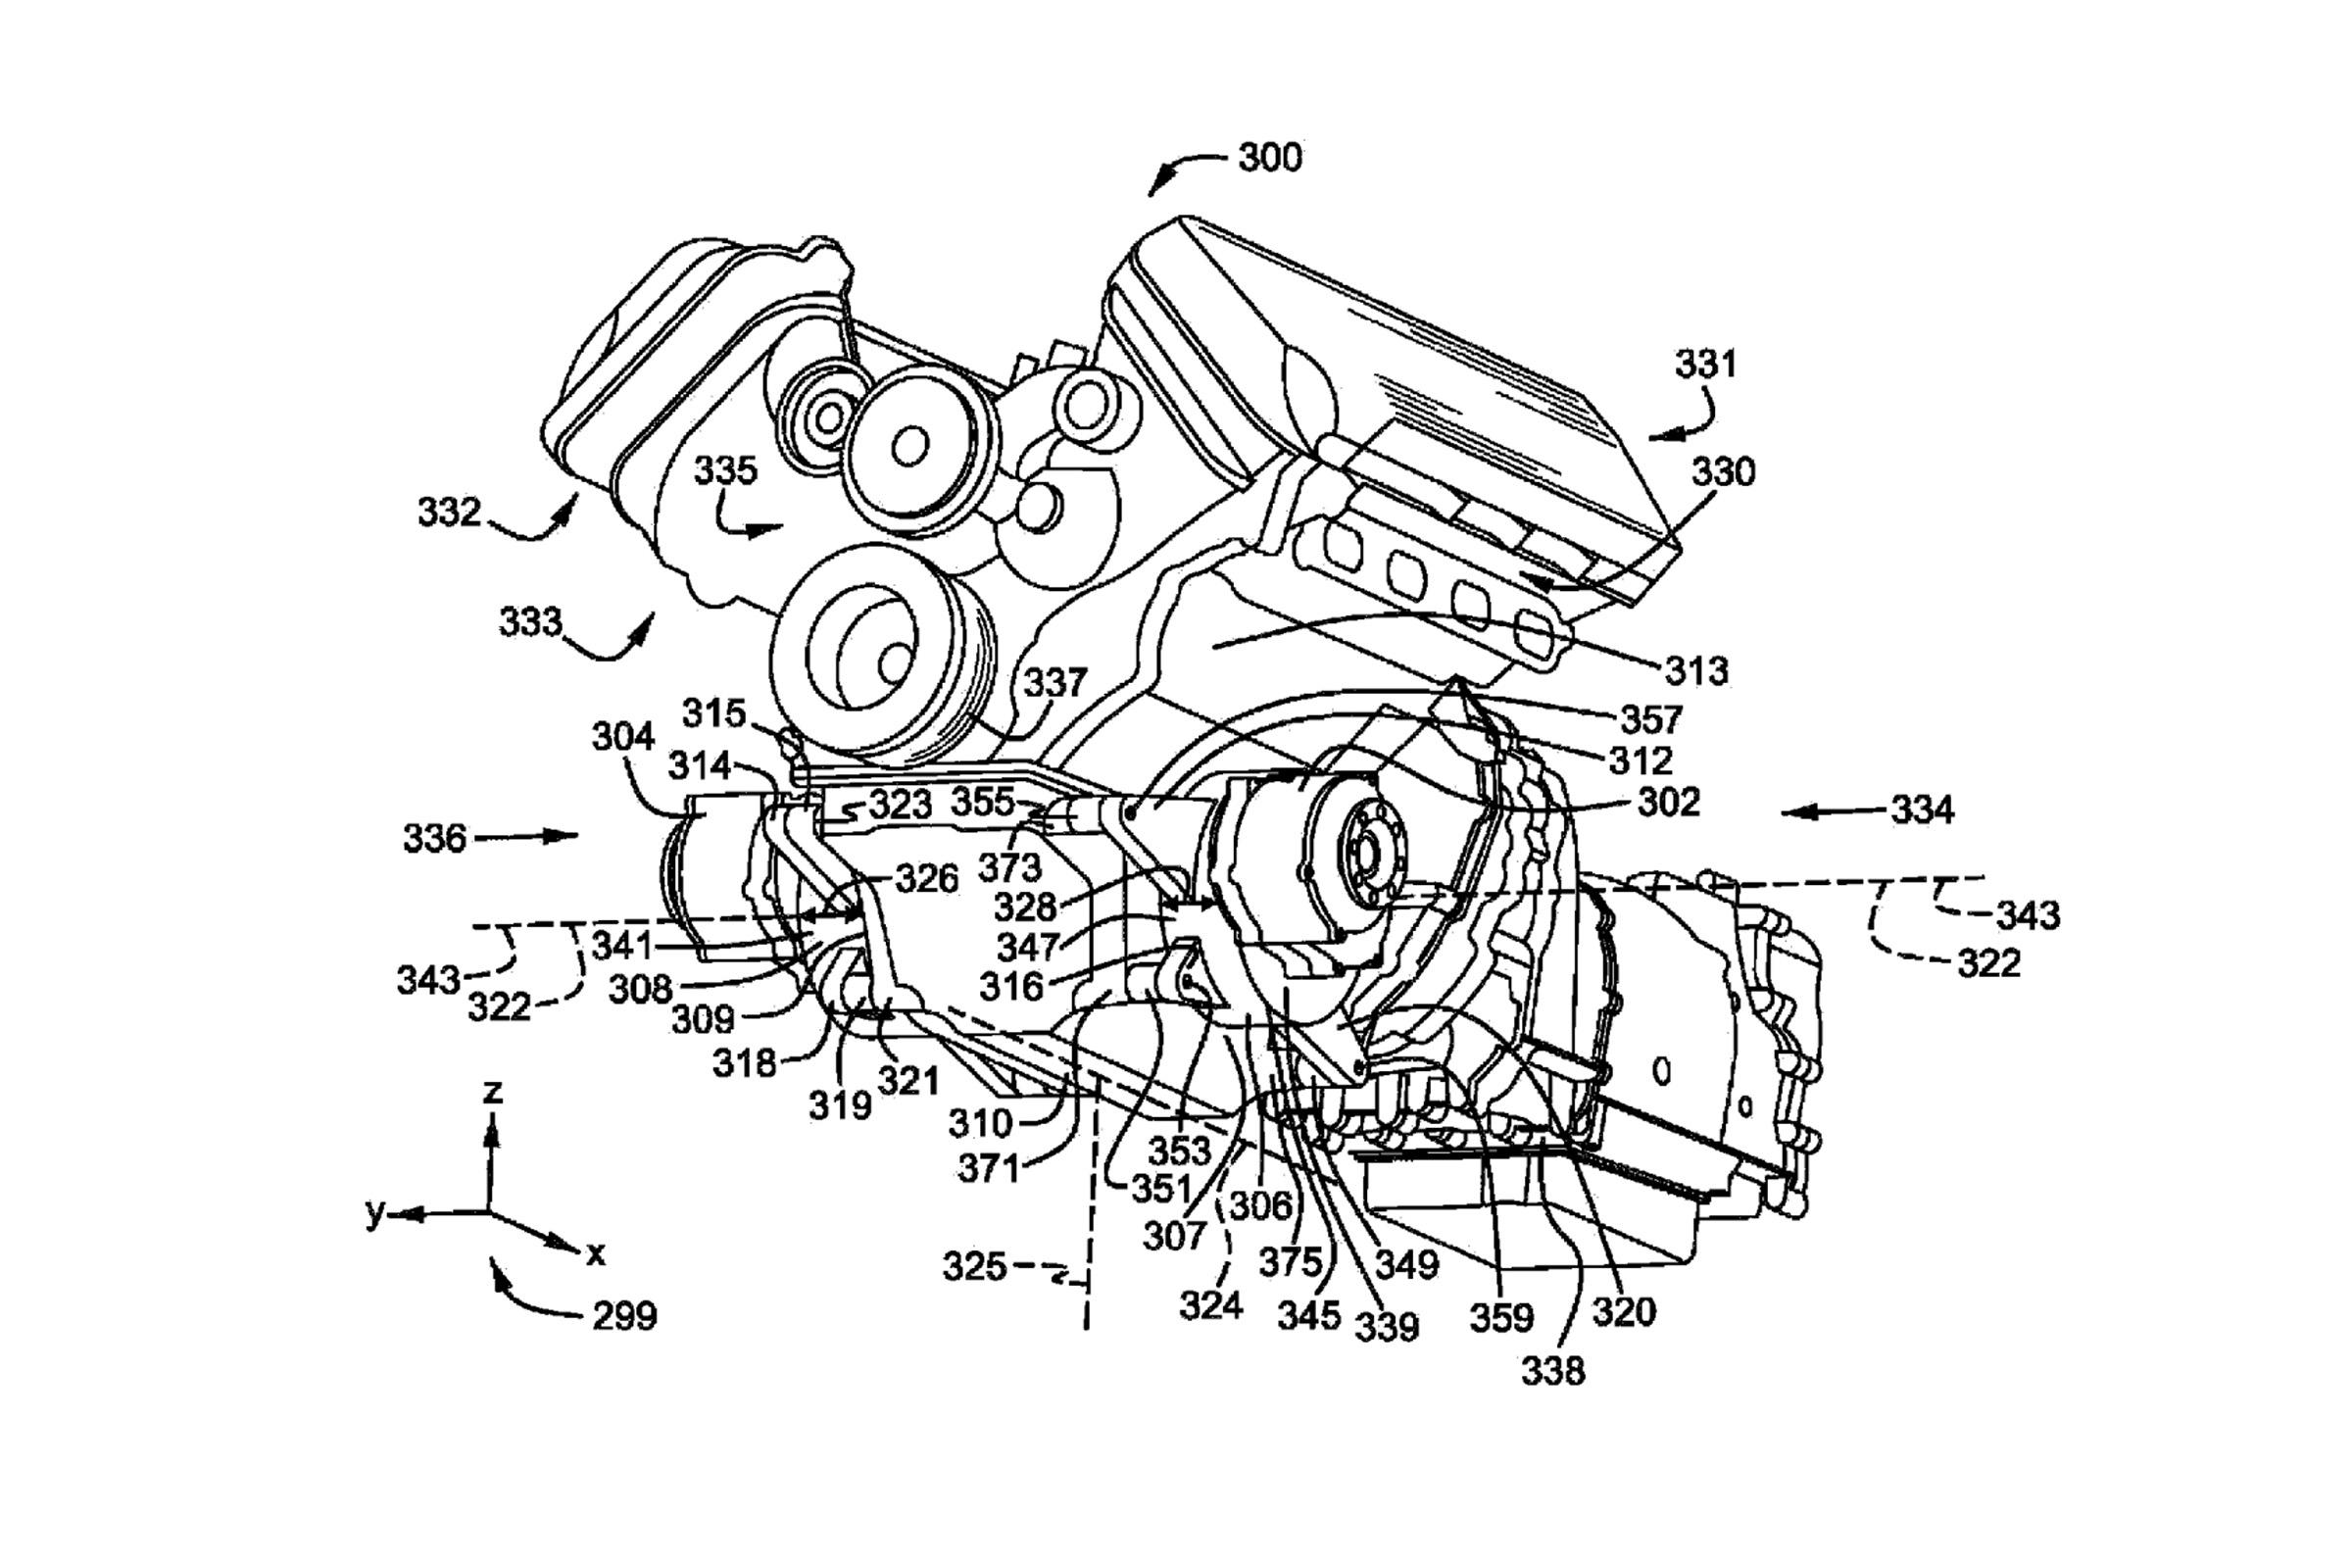 ford-hybrid-patent-application-promo